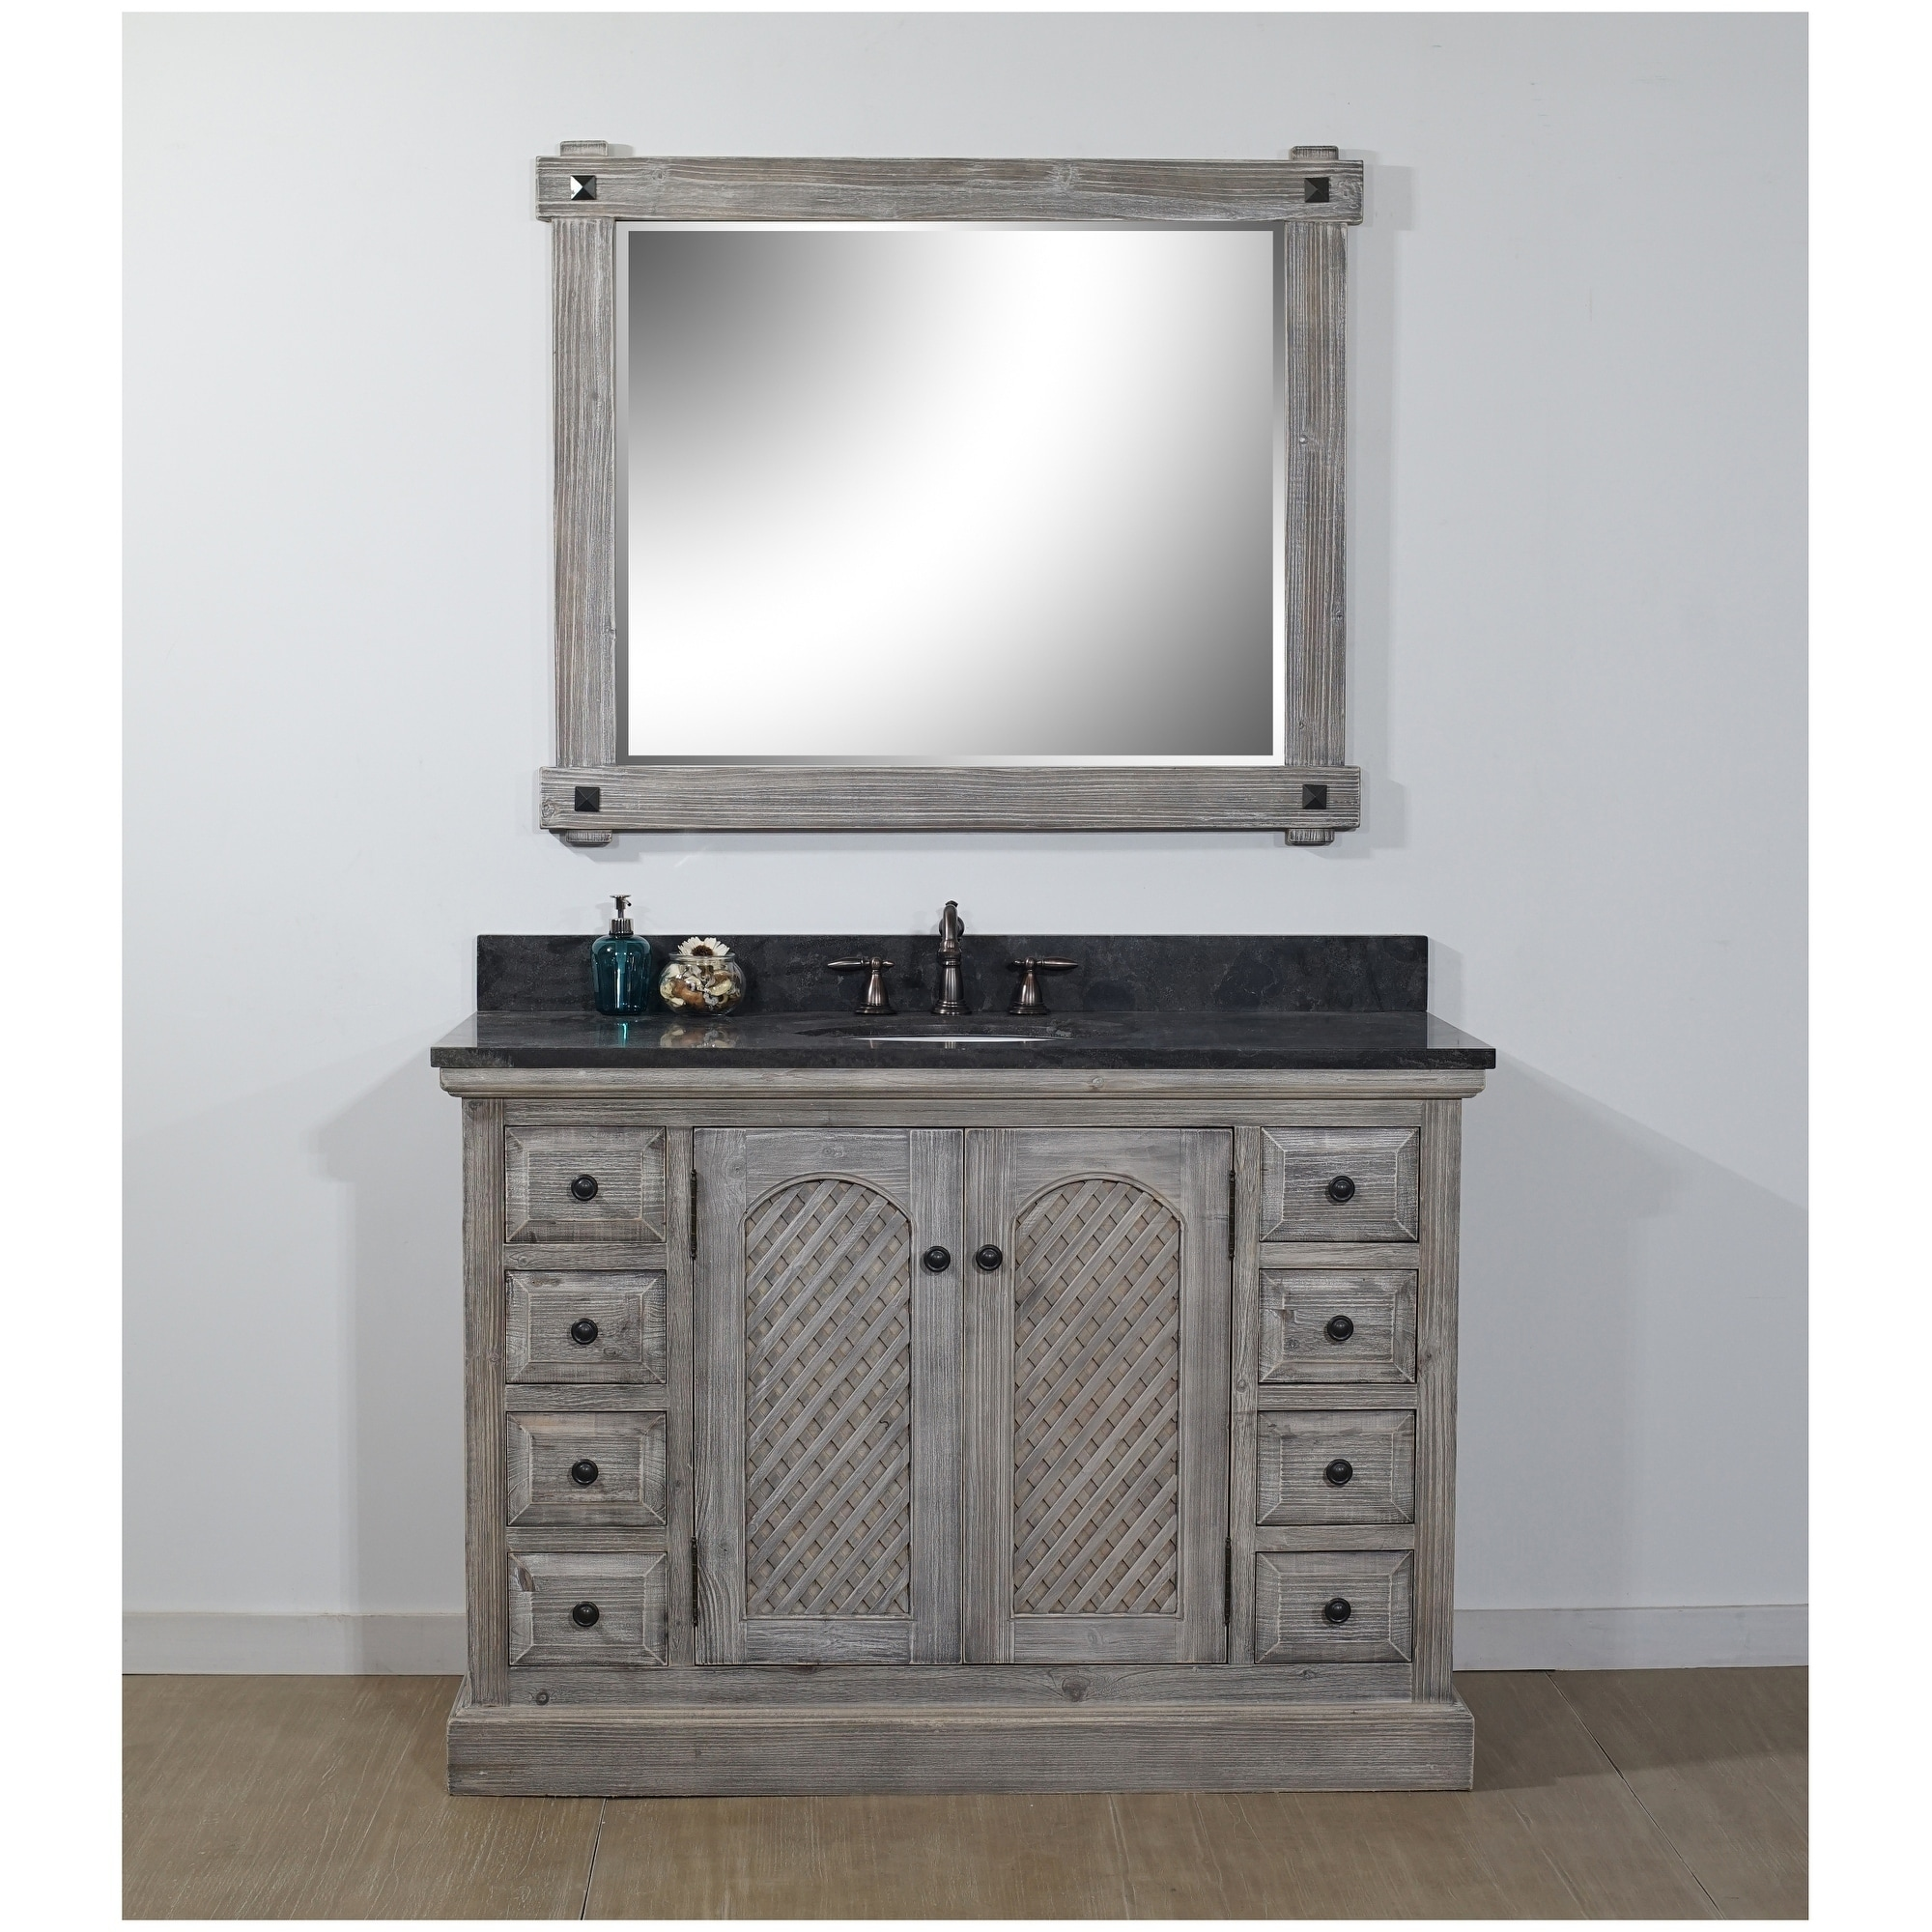 Shop For Rustic Style 48 Inch Bathroom Vanity In Distressed Grey Driftwood Finish With Limestone Top No Faucet Get Free Delivery On Everything At Overstock Your Online Furniture Outlet Store Get 5 In Rewards With Club O 18185159